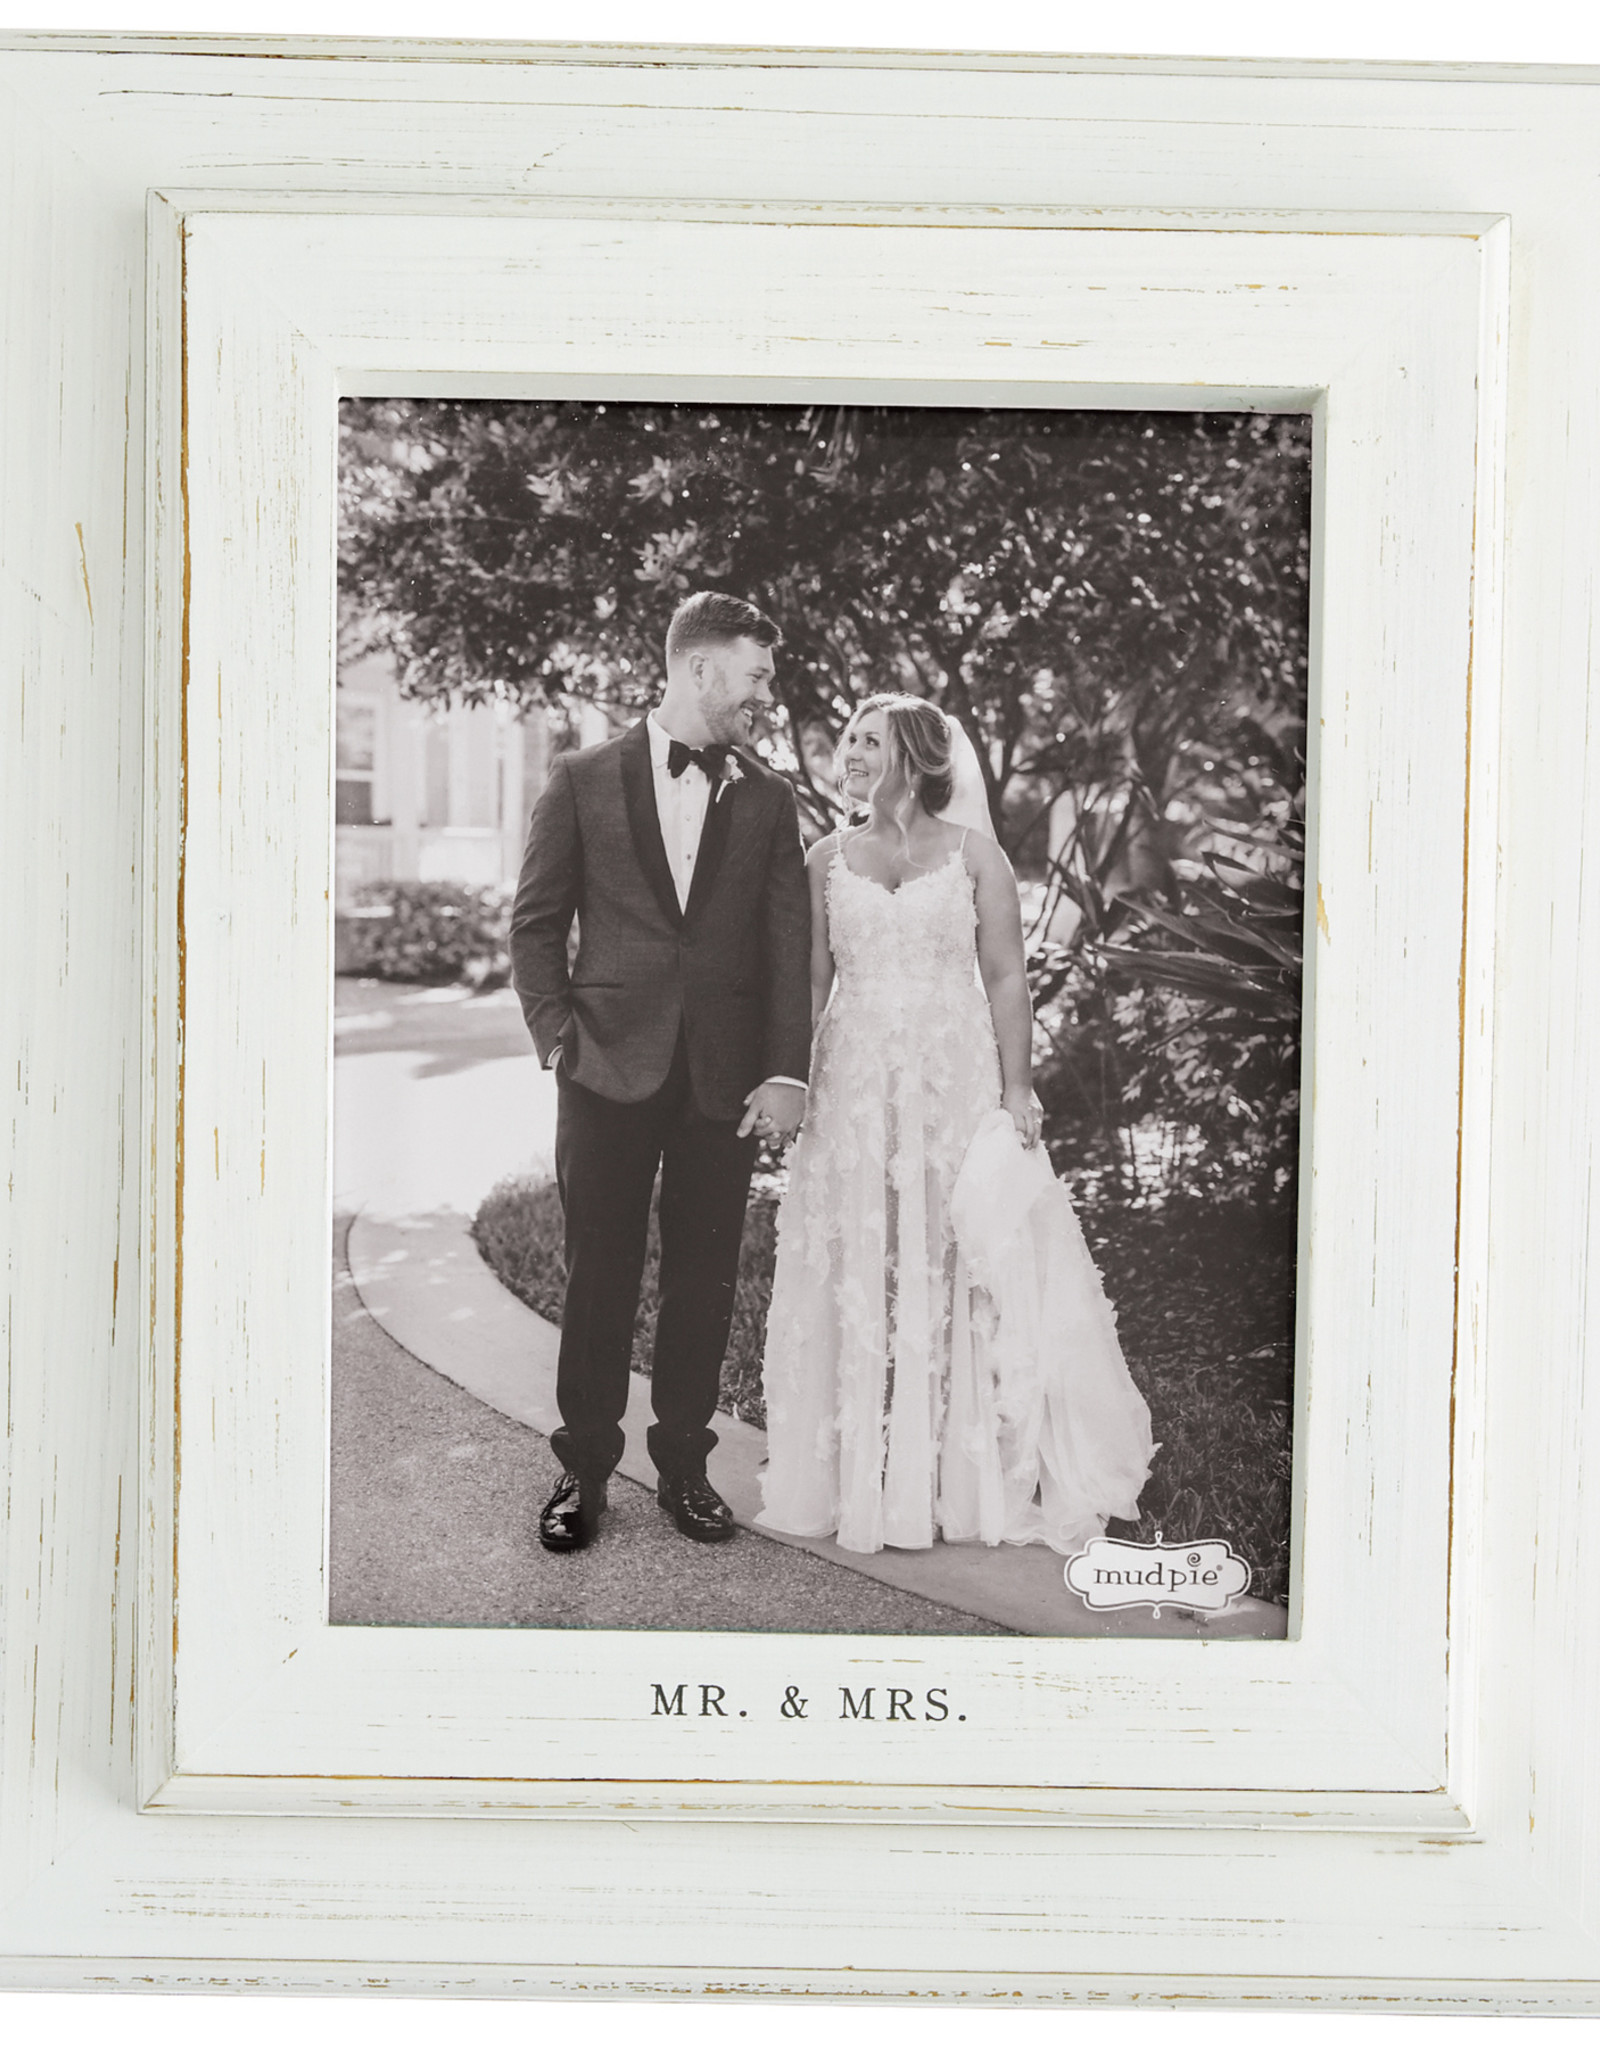 Mr and Mrs Frame 8x10